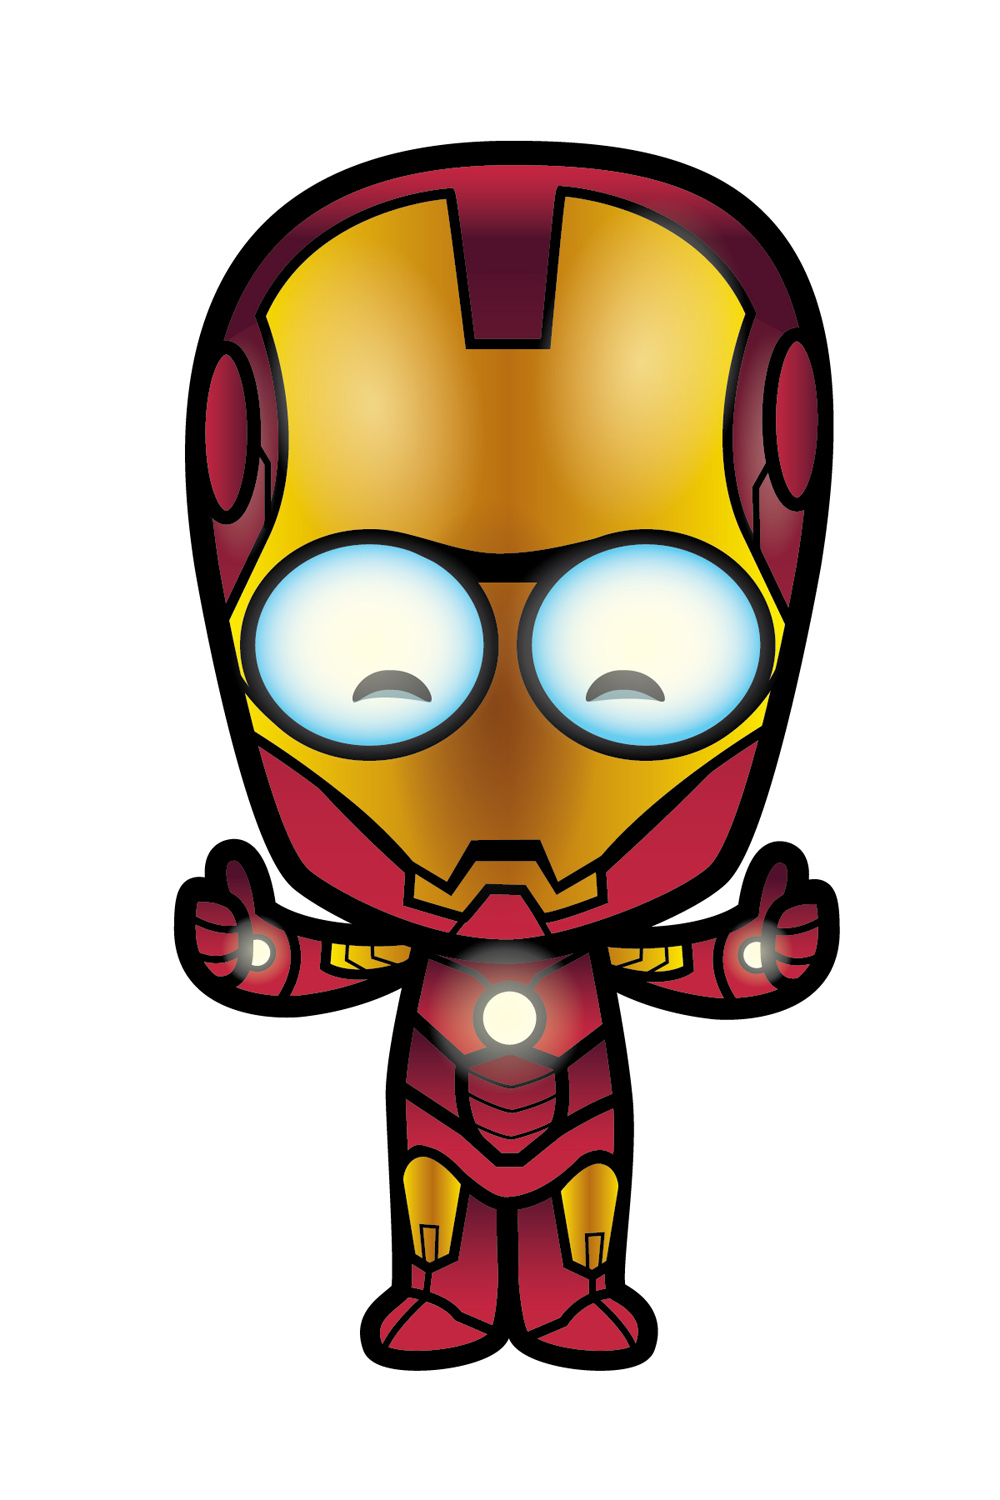 Lil Oishi As Iron Man As He Gets Ready For The Avengers  Created By